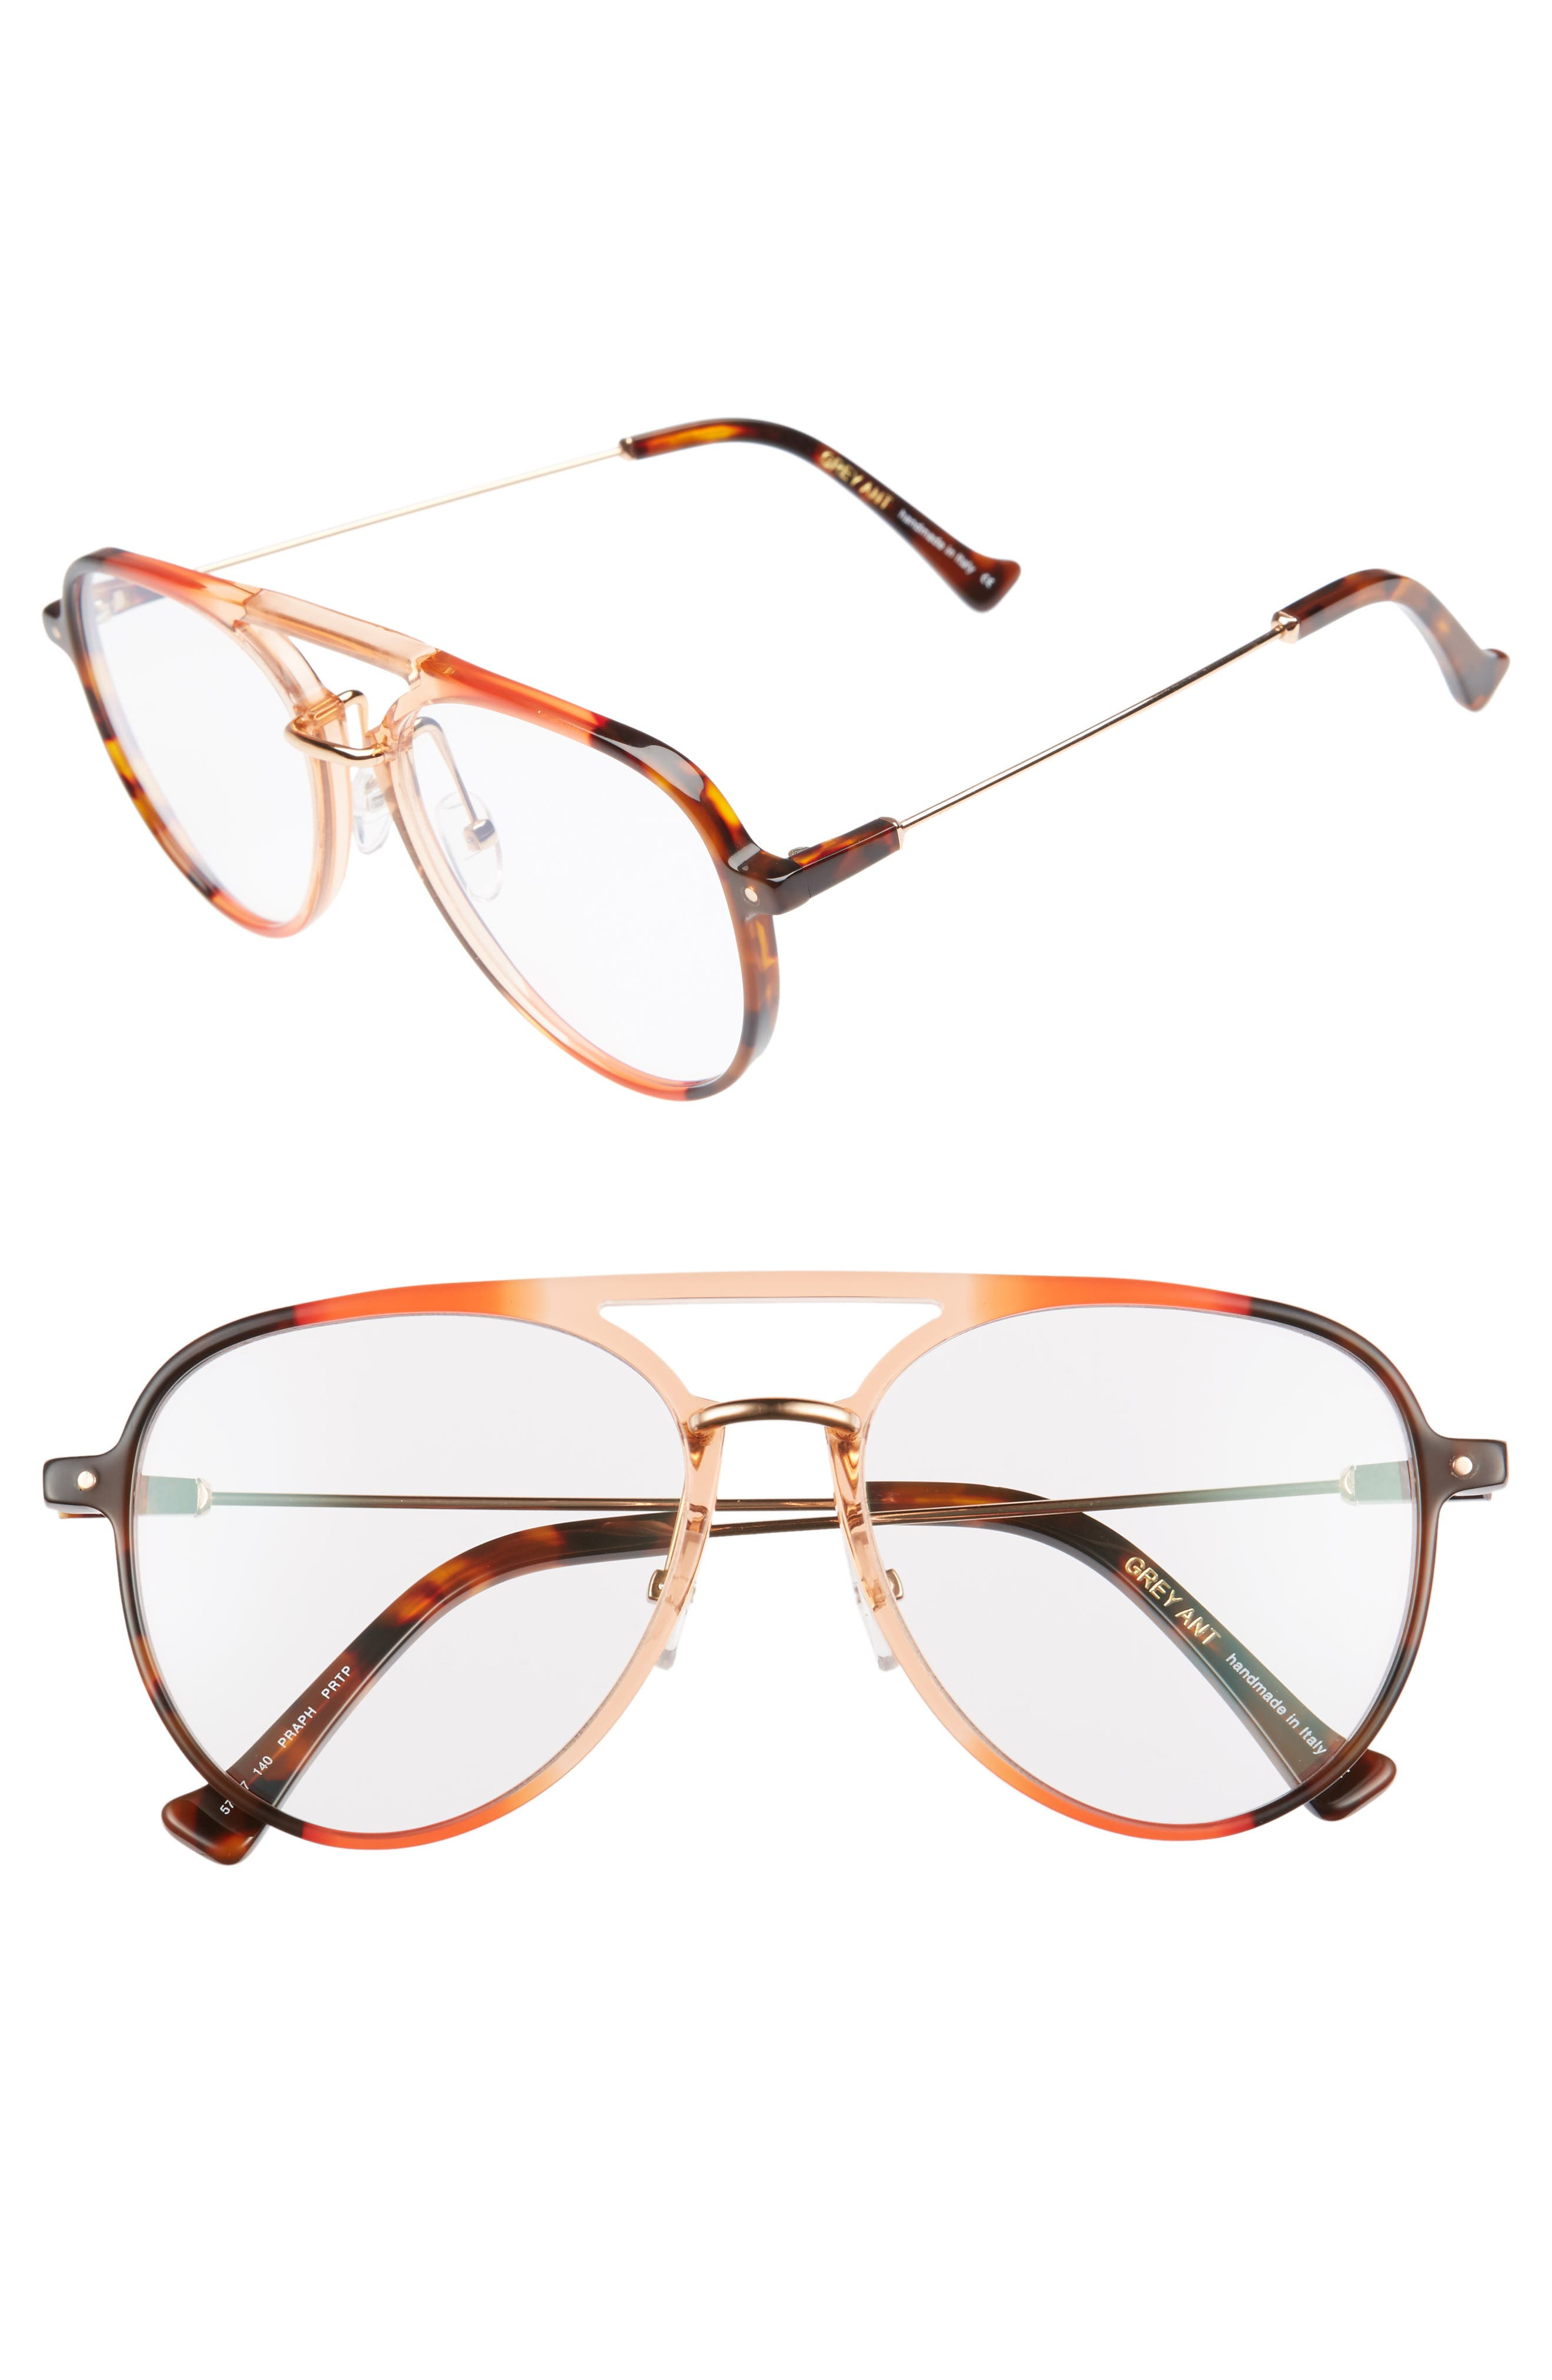 Praph 57mm Aviator Glasses,                         Main,                         color, CLEAR/AMBER TORT HARDWARE